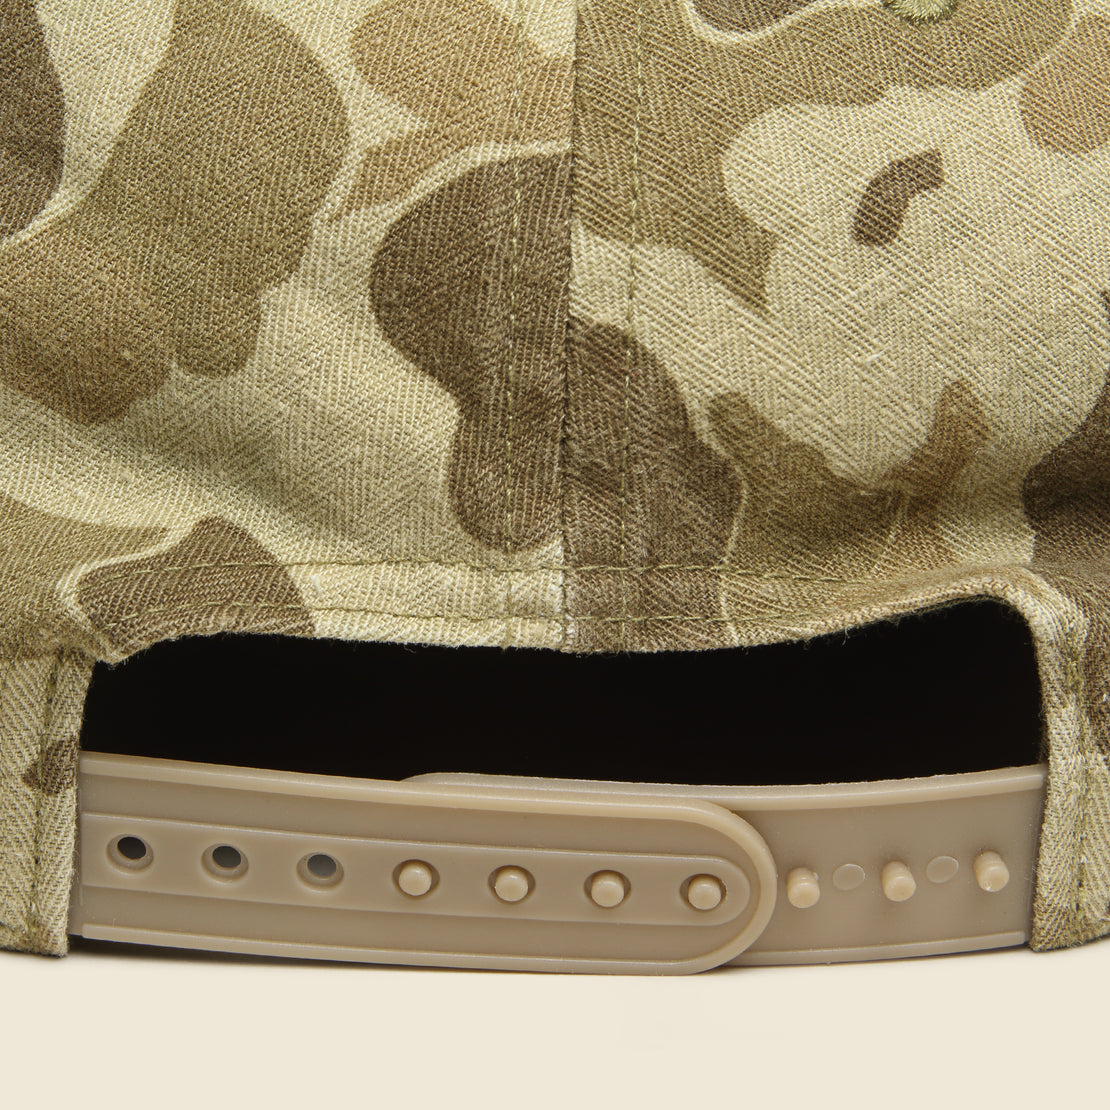 Camo Ball Cap - Brown/Tan